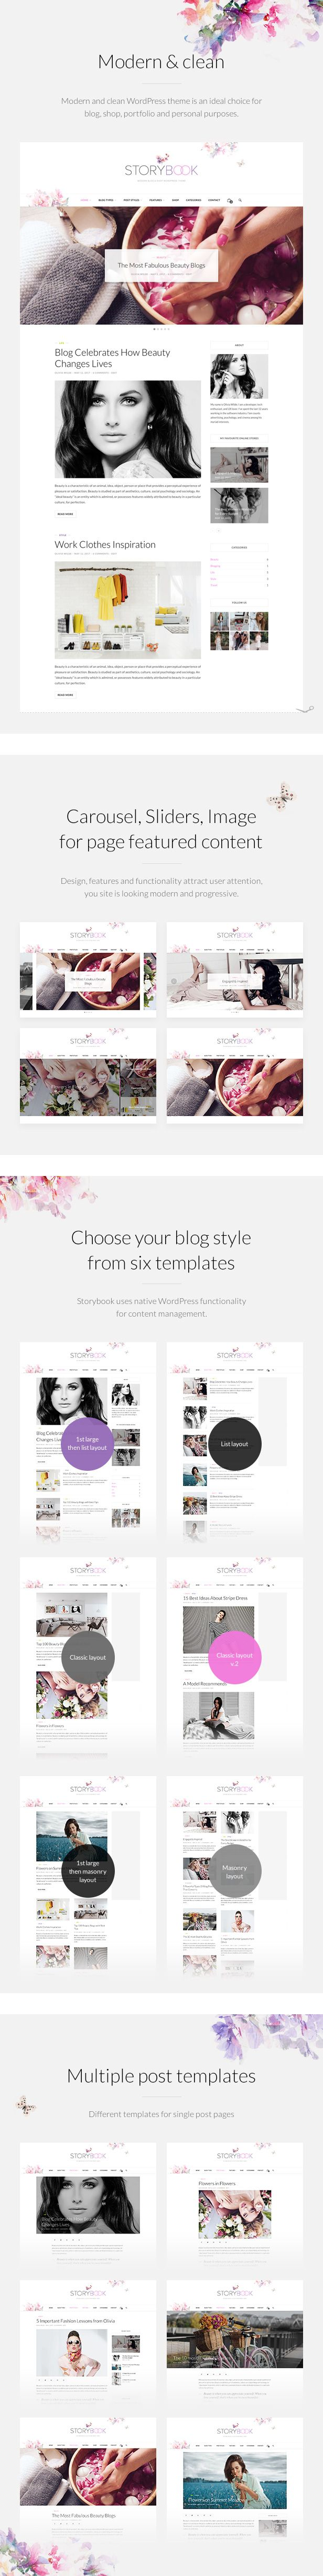 Download Storybook – Modern Blog & Shop Theme (Personal)